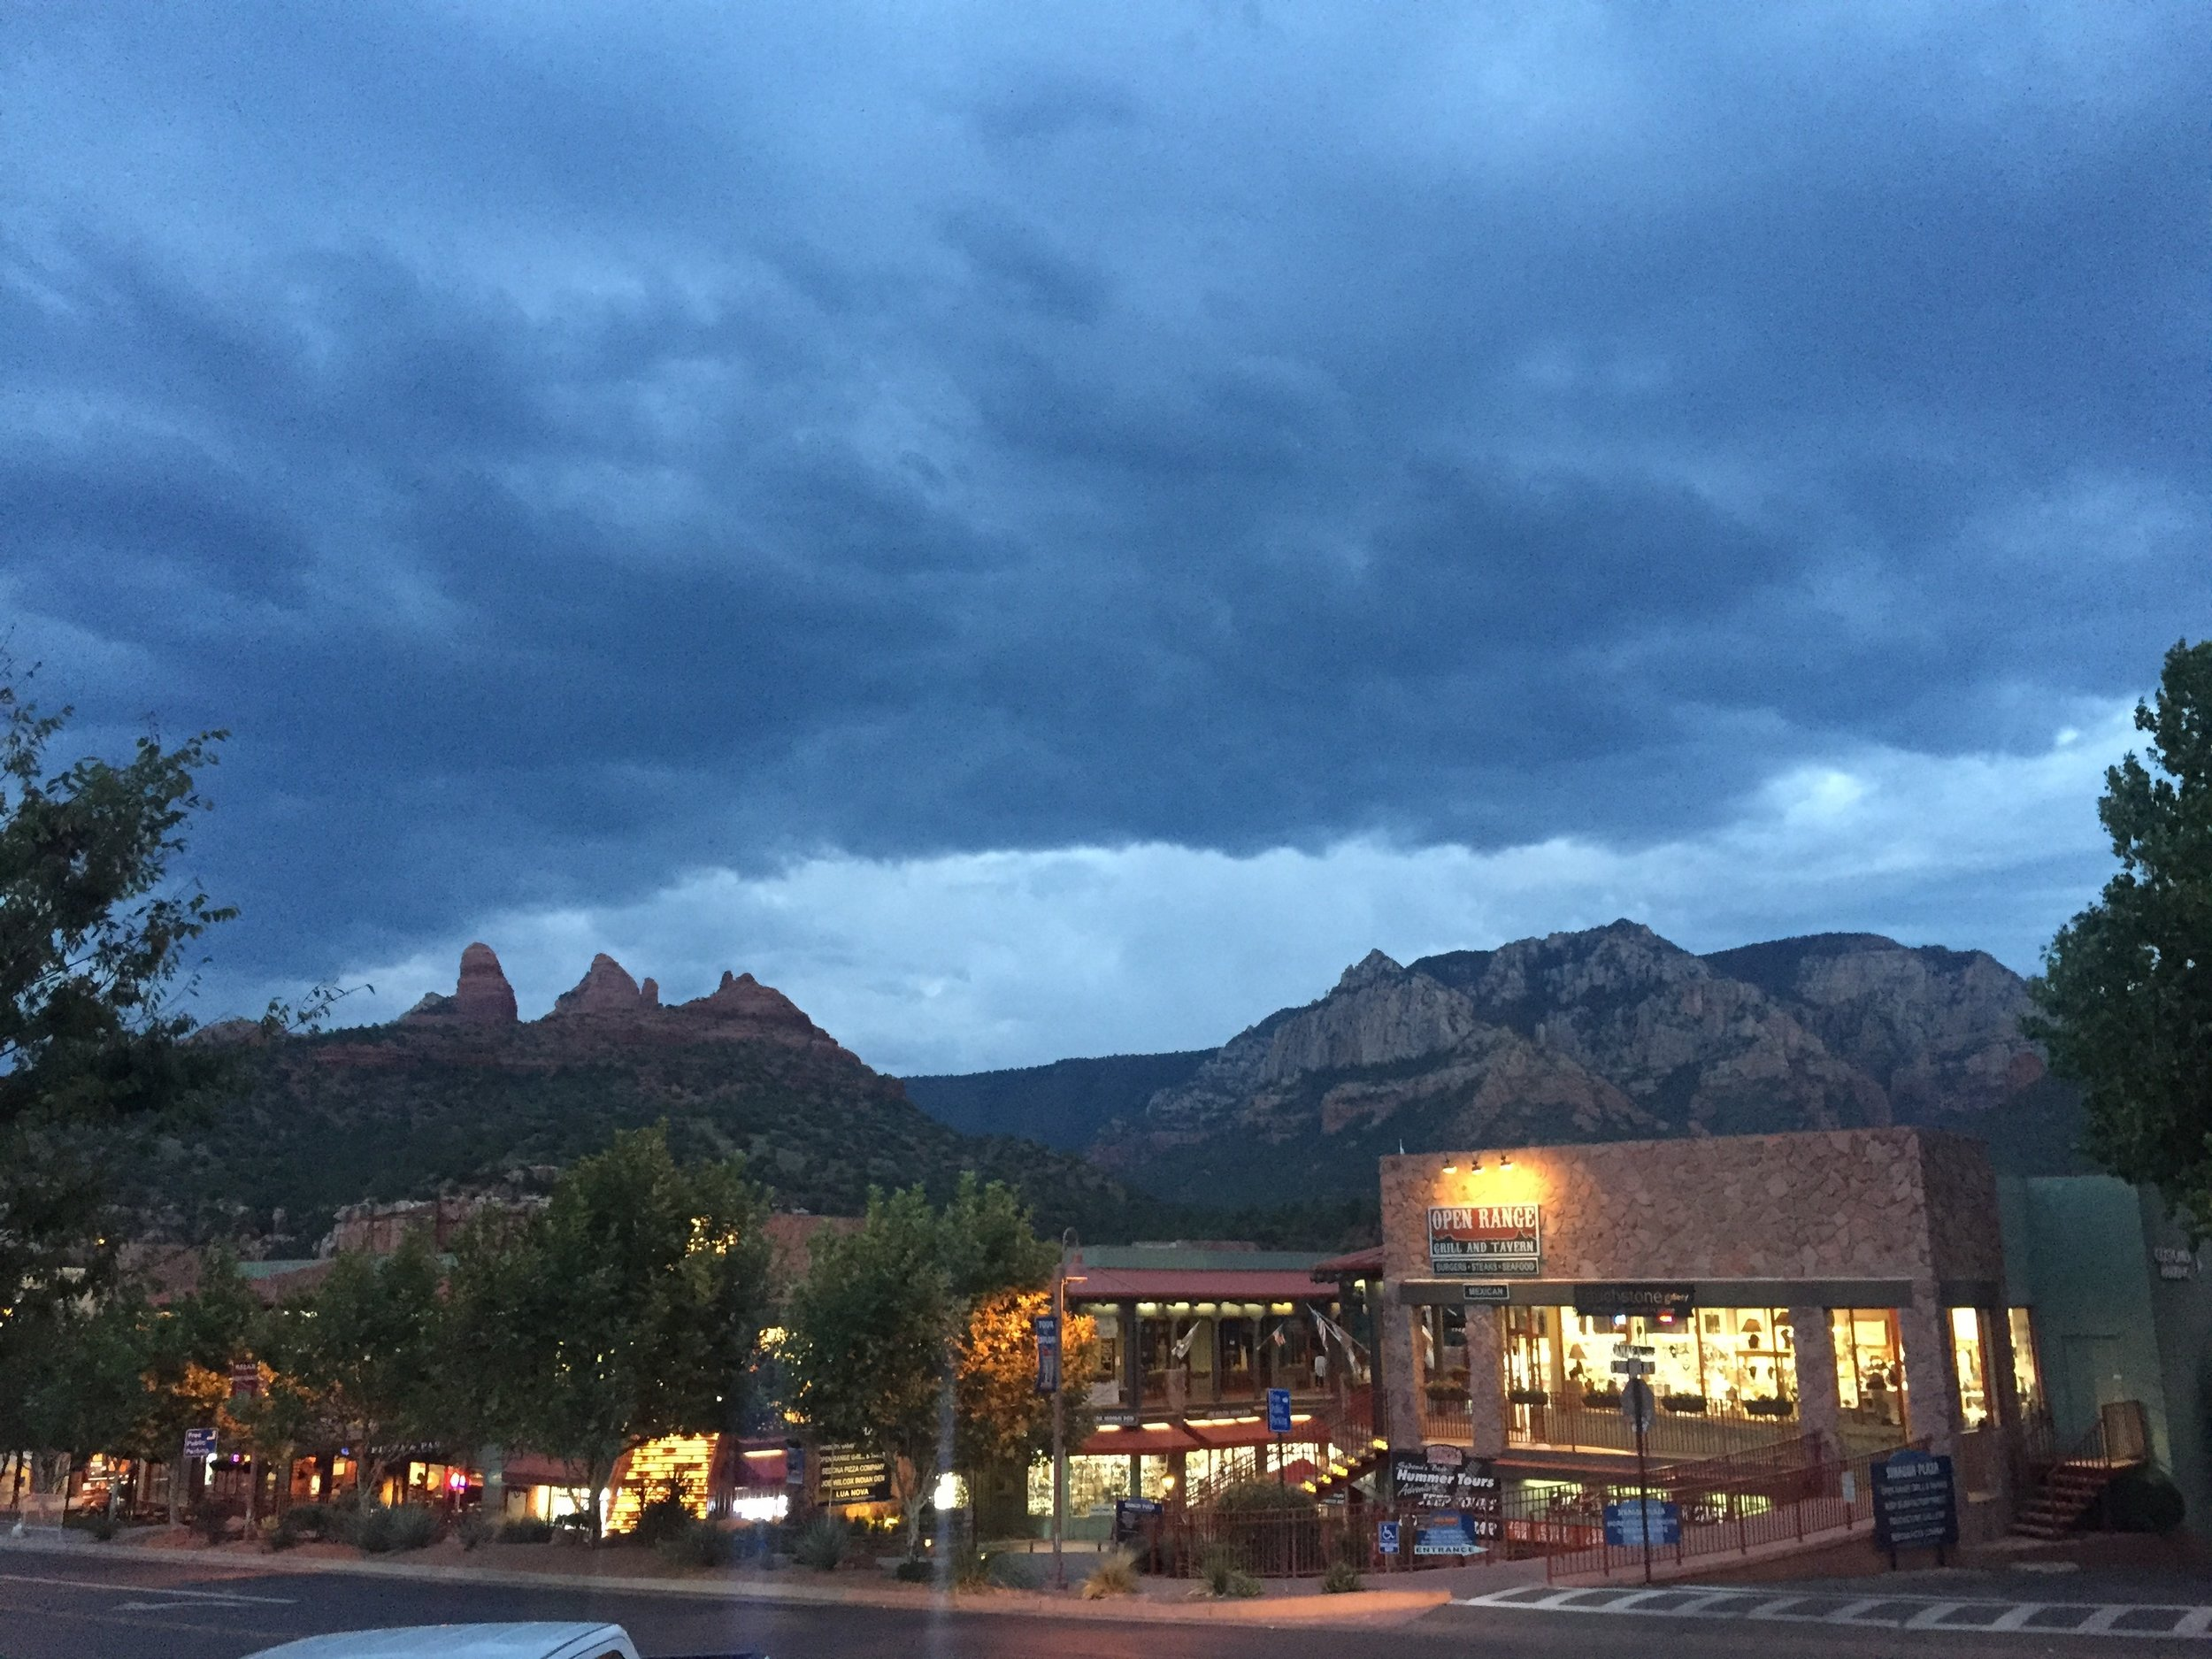 Sedona Storm Clouds. Its Monsoon Season. No wading in the river for us. After Harvey, even light rain makes me nervous!